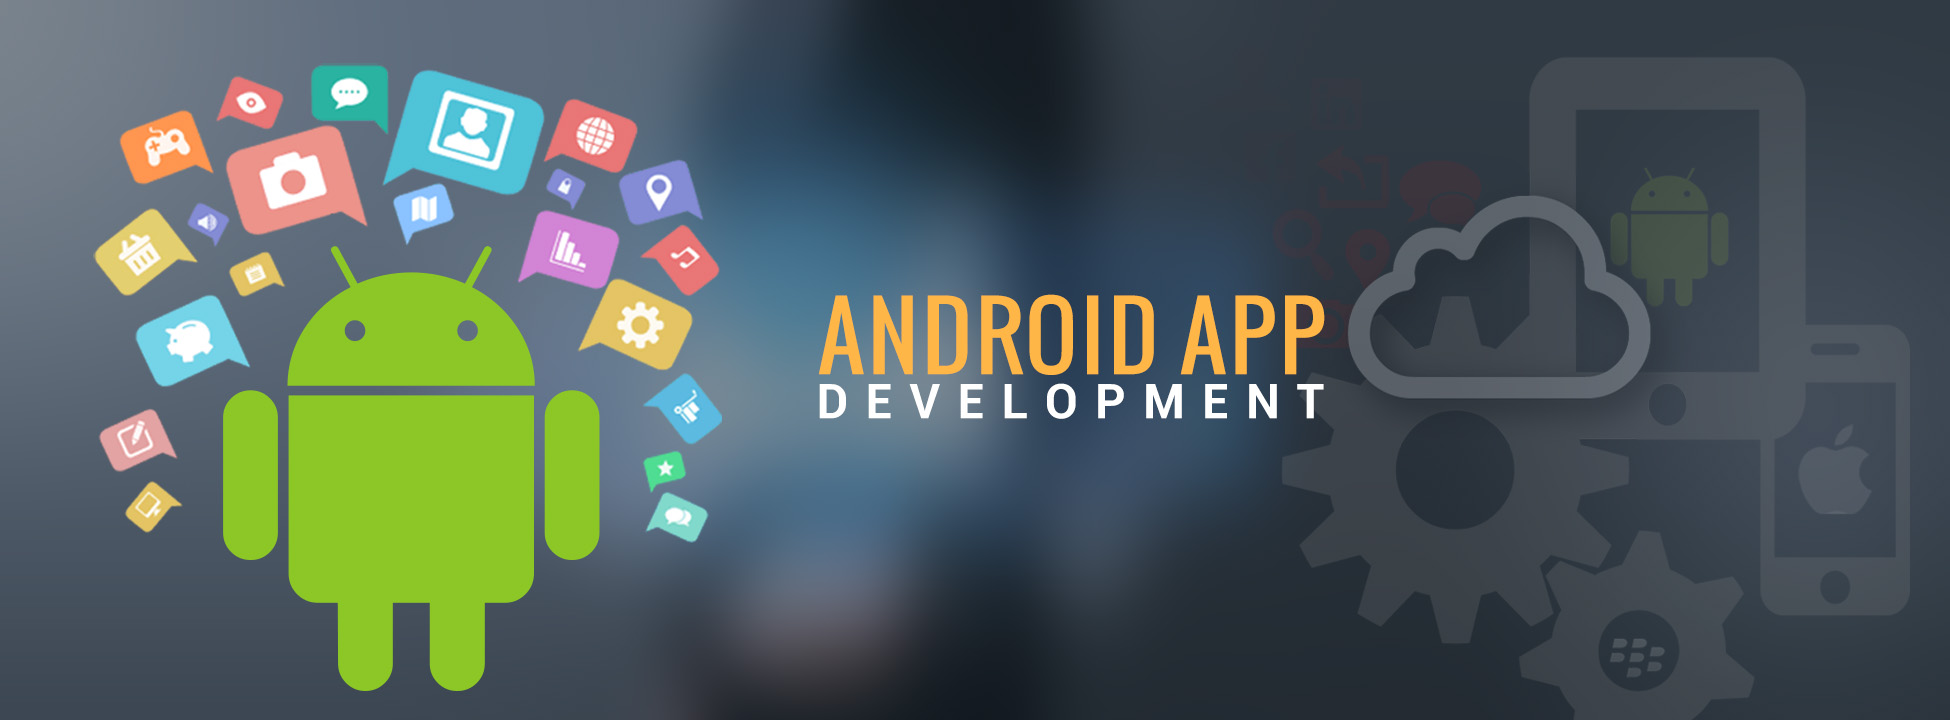 best android app development company bangalore